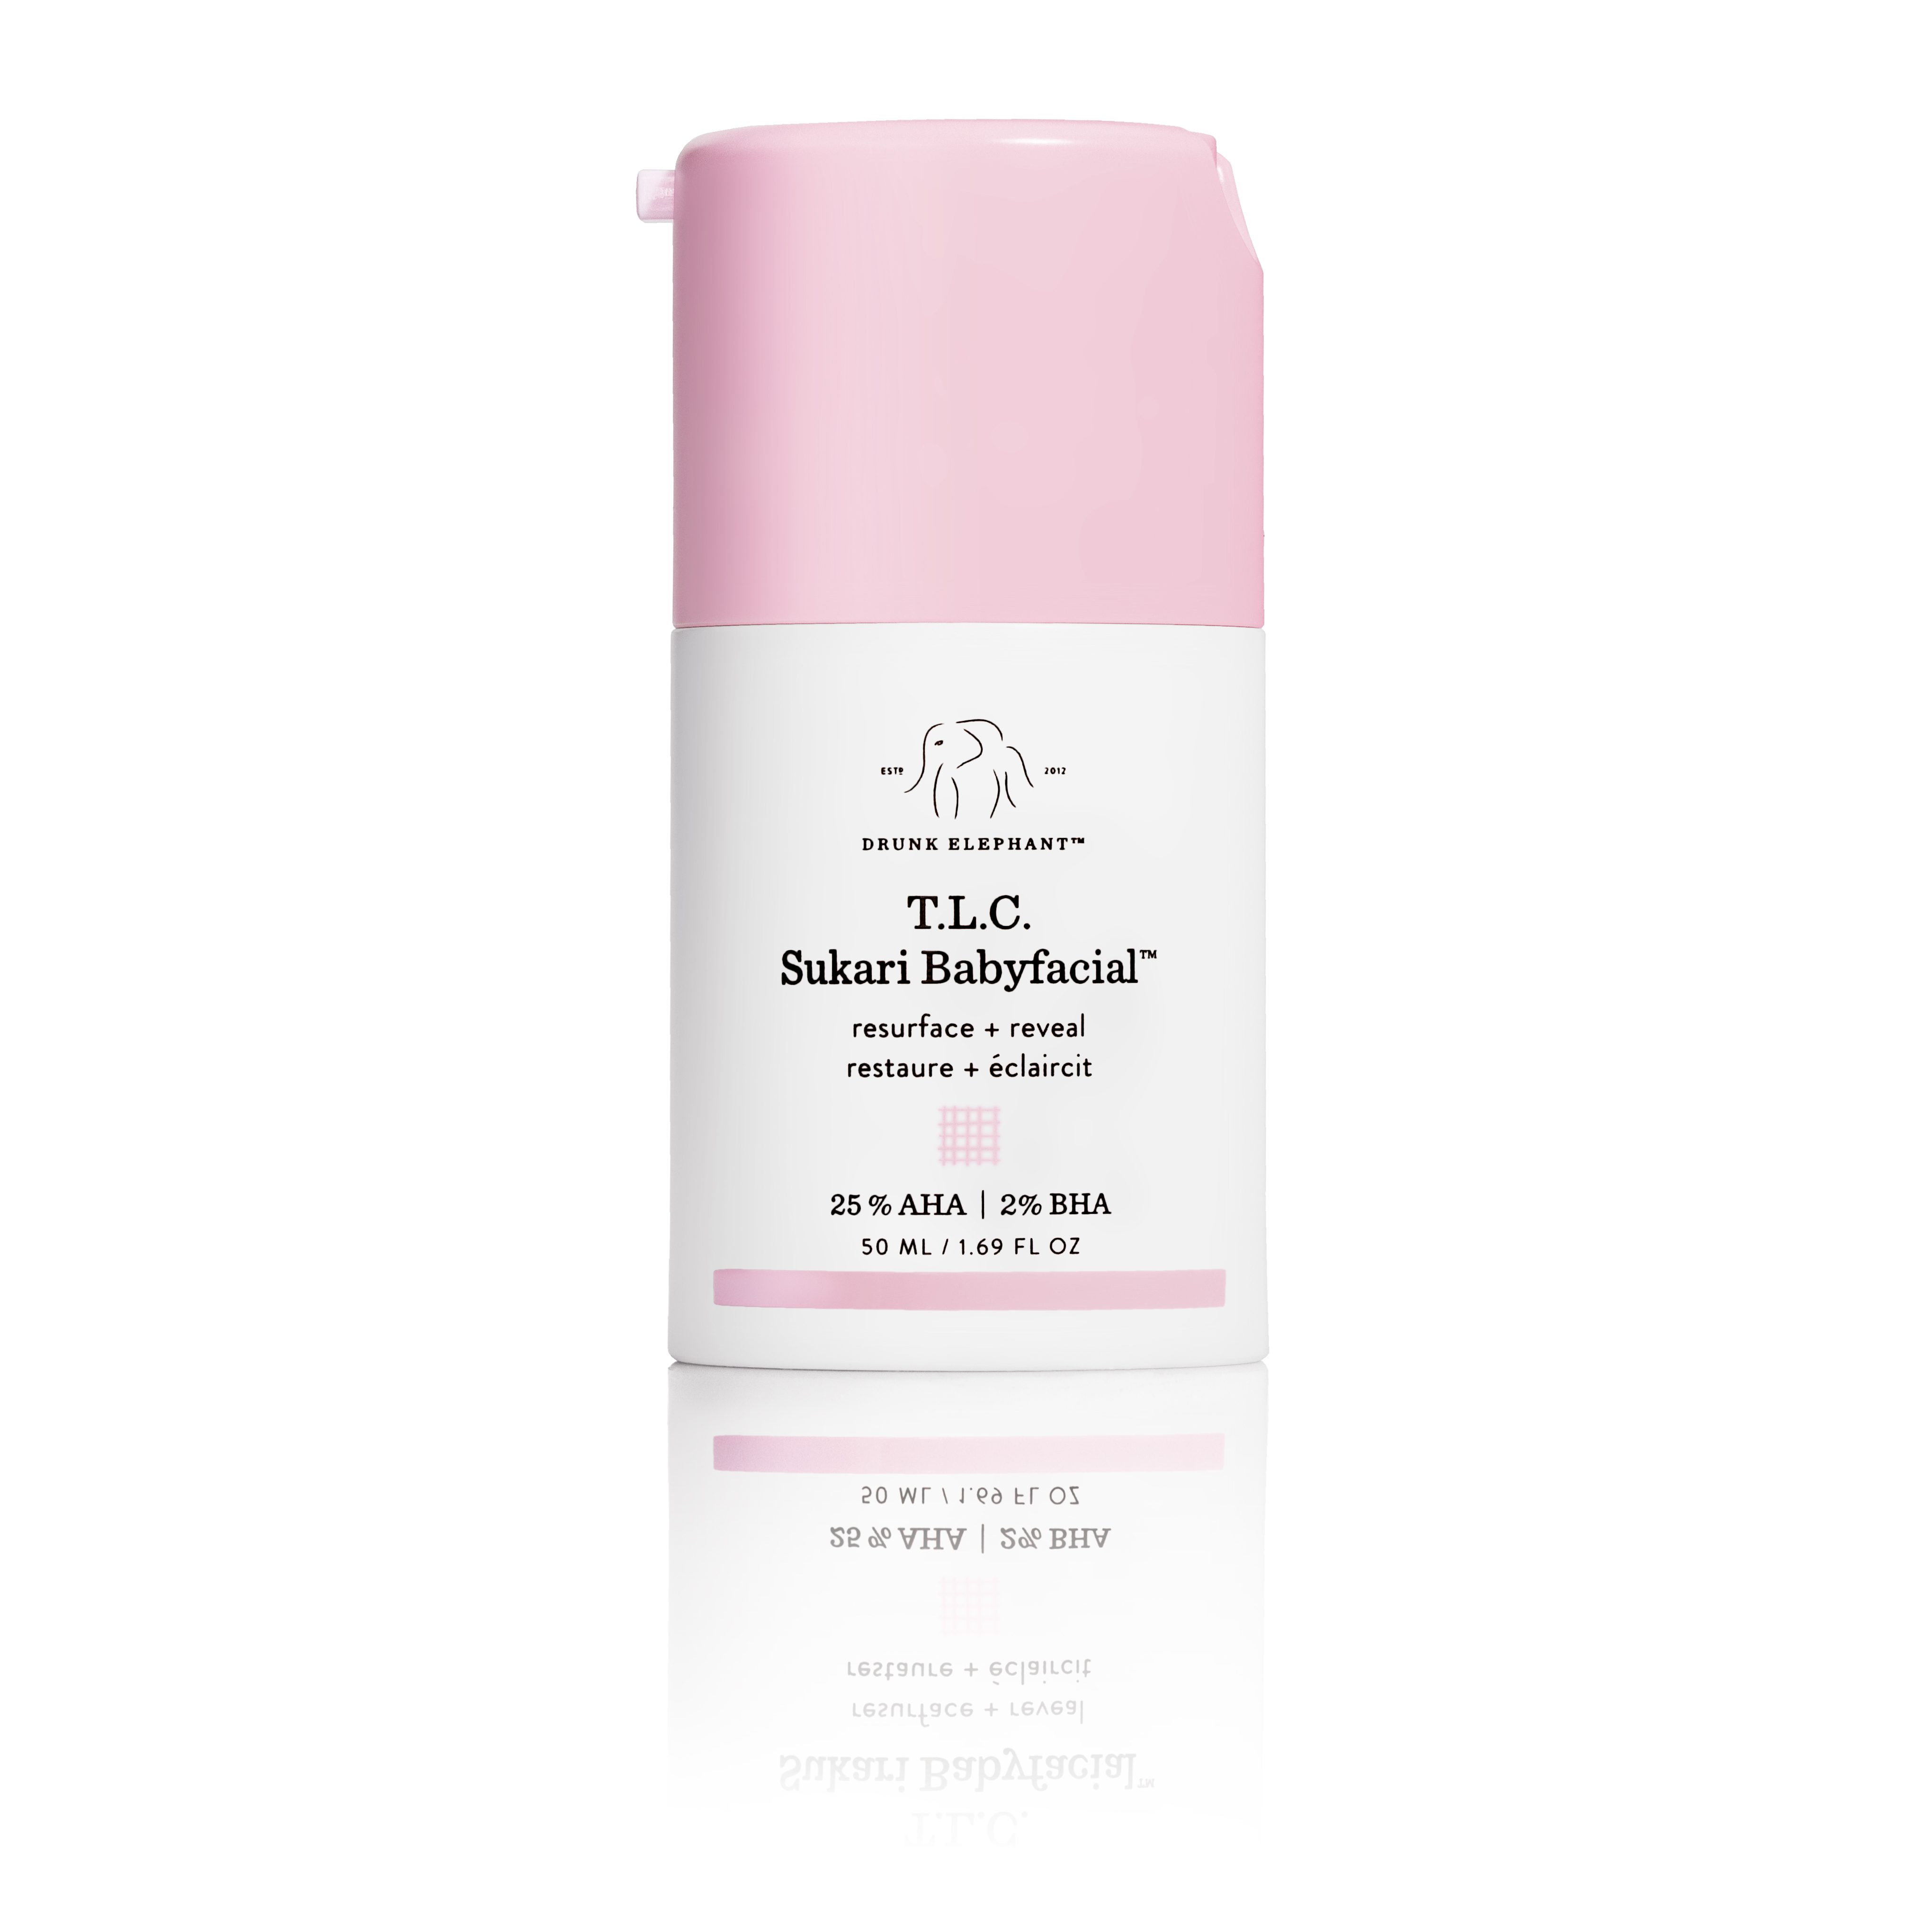 50 Star Products - March 2018